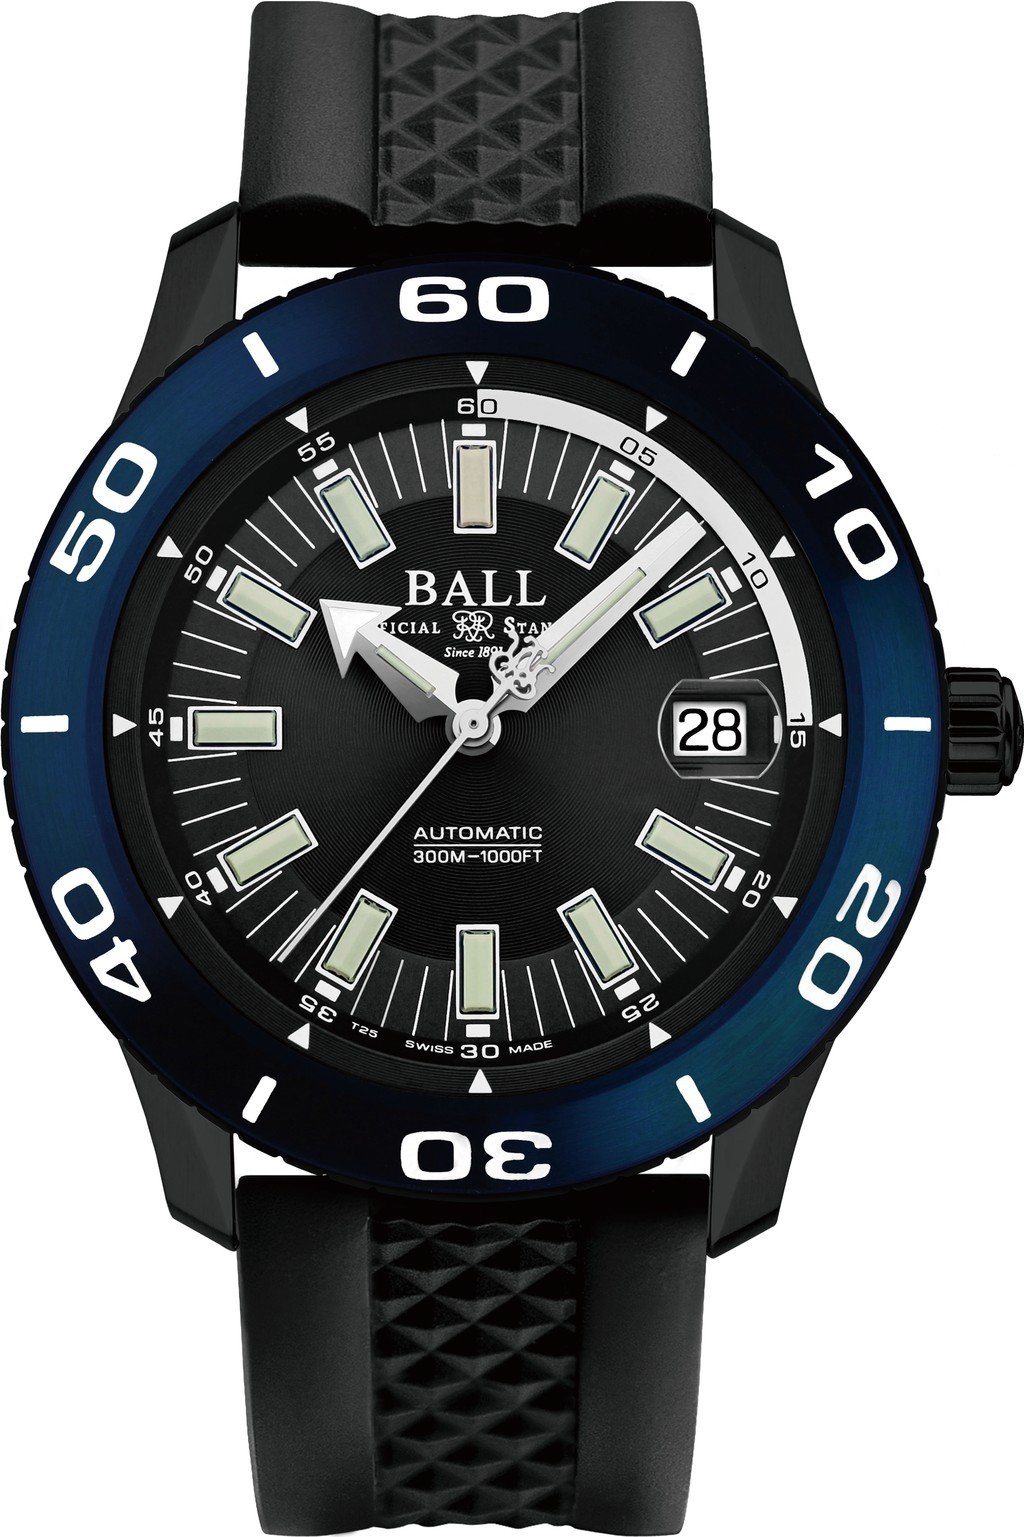 BALL Watch Fireman NECC II